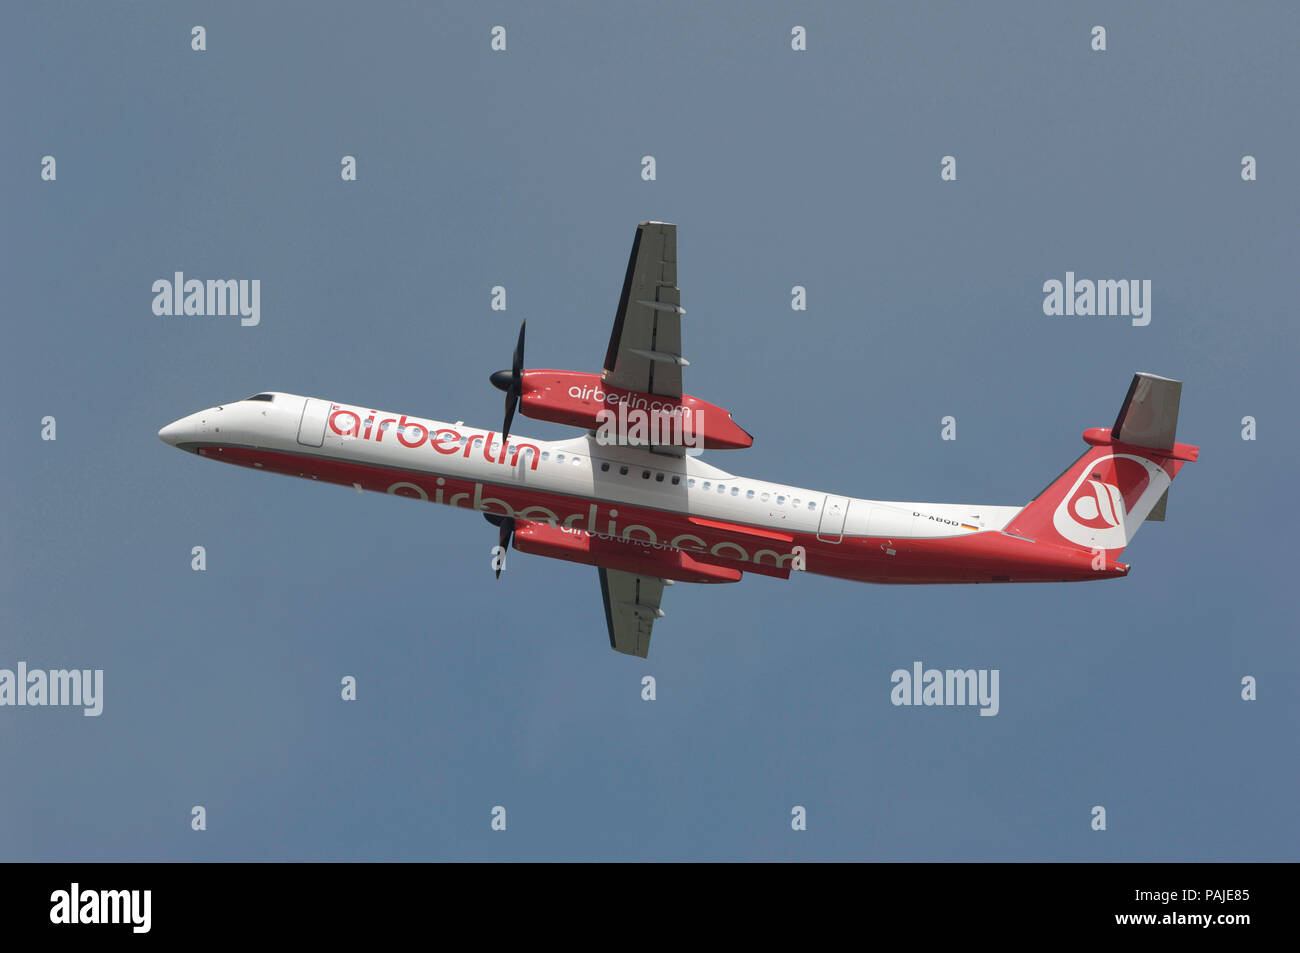 Air Berlin Bombardier DHC-8 Q400 climbing out after take-off - Stock Image